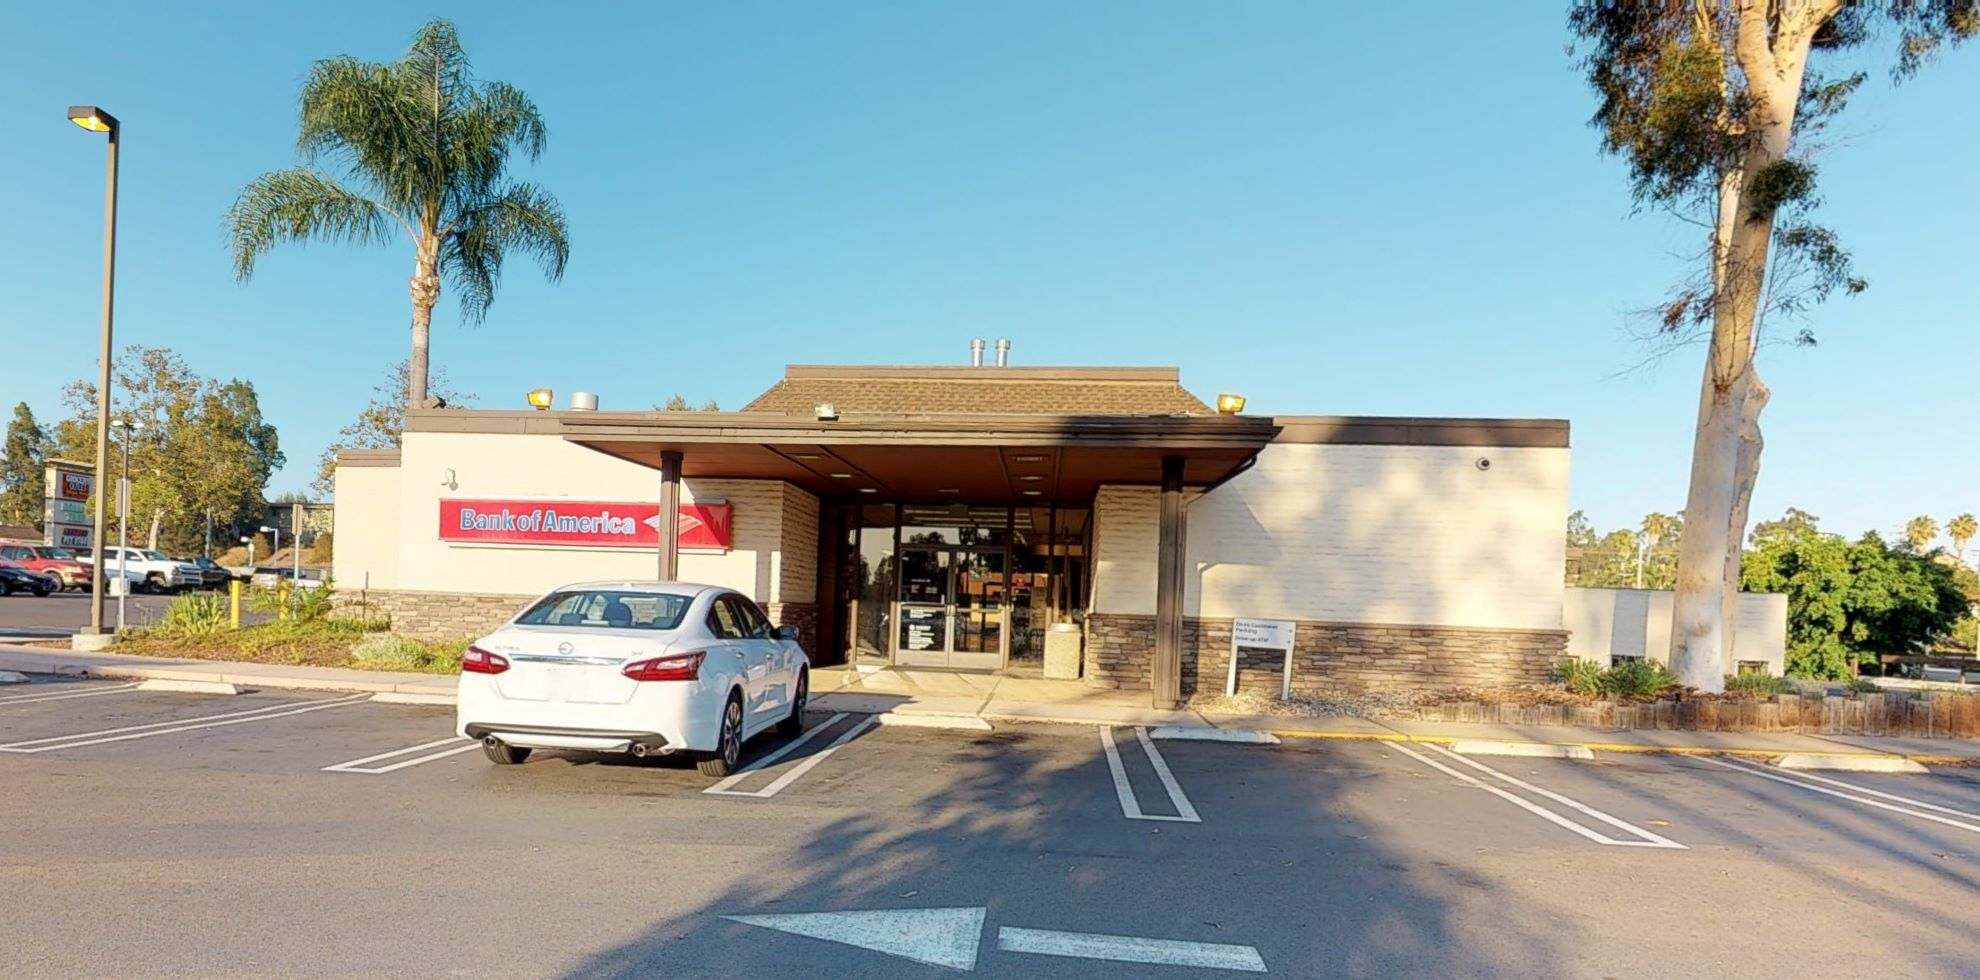 Bank of America financial center with drive-thru ATM   1125 S Main Ave, Fallbrook, CA 92028